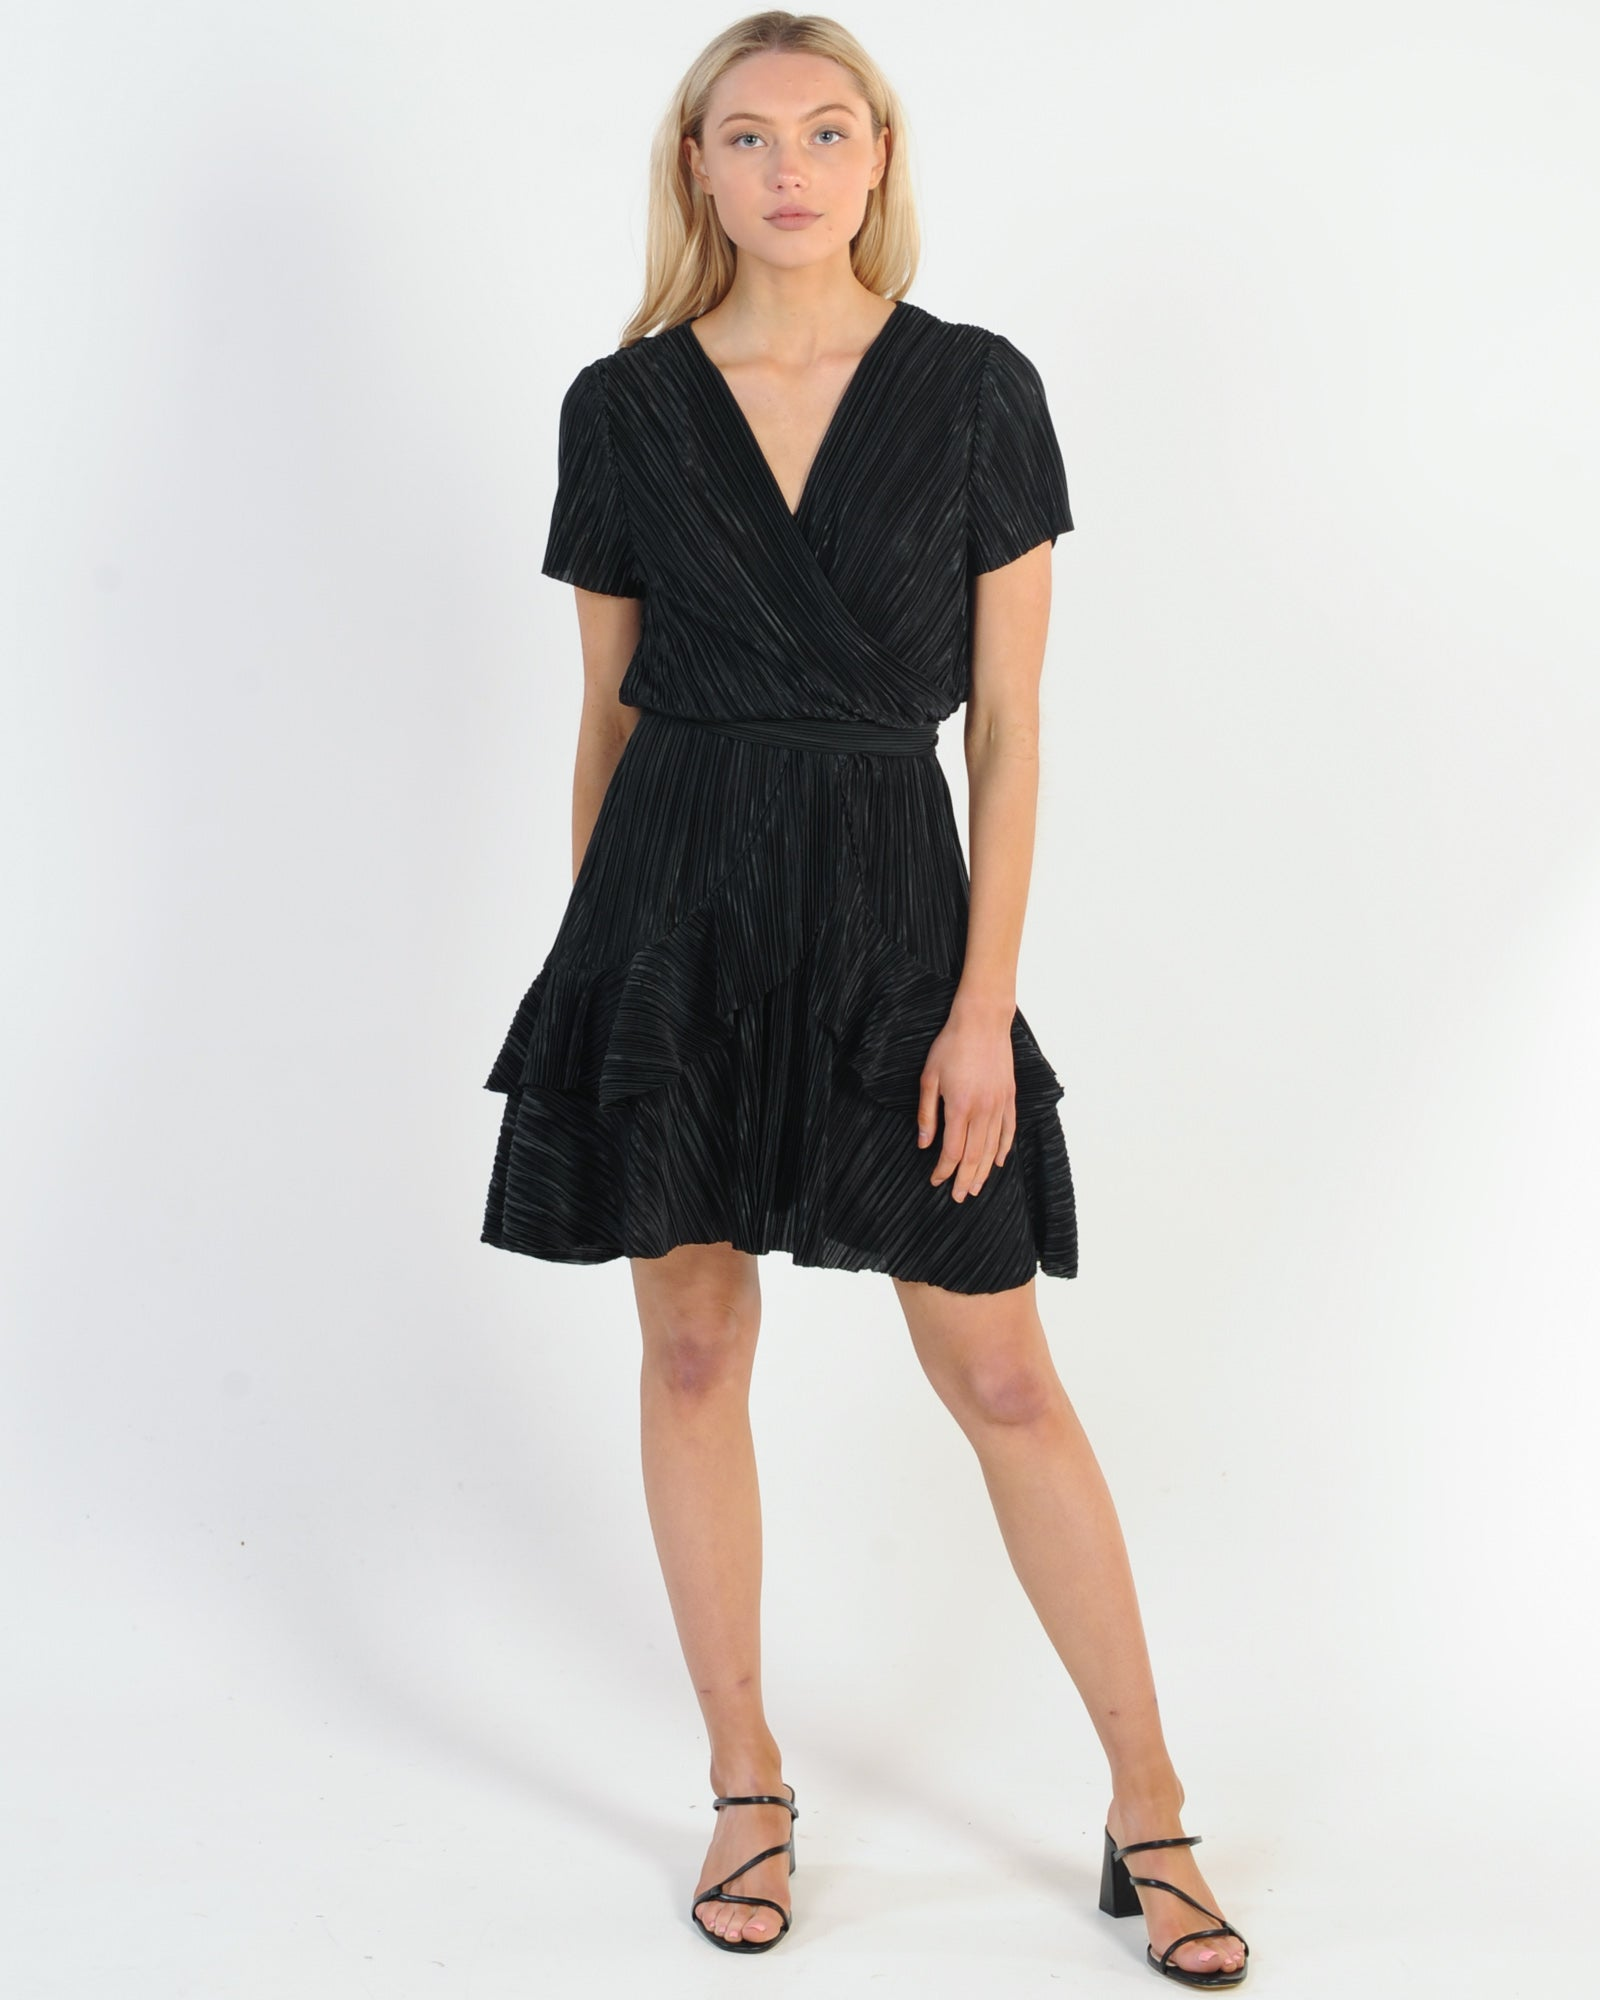 Mean Girls Dress - Black